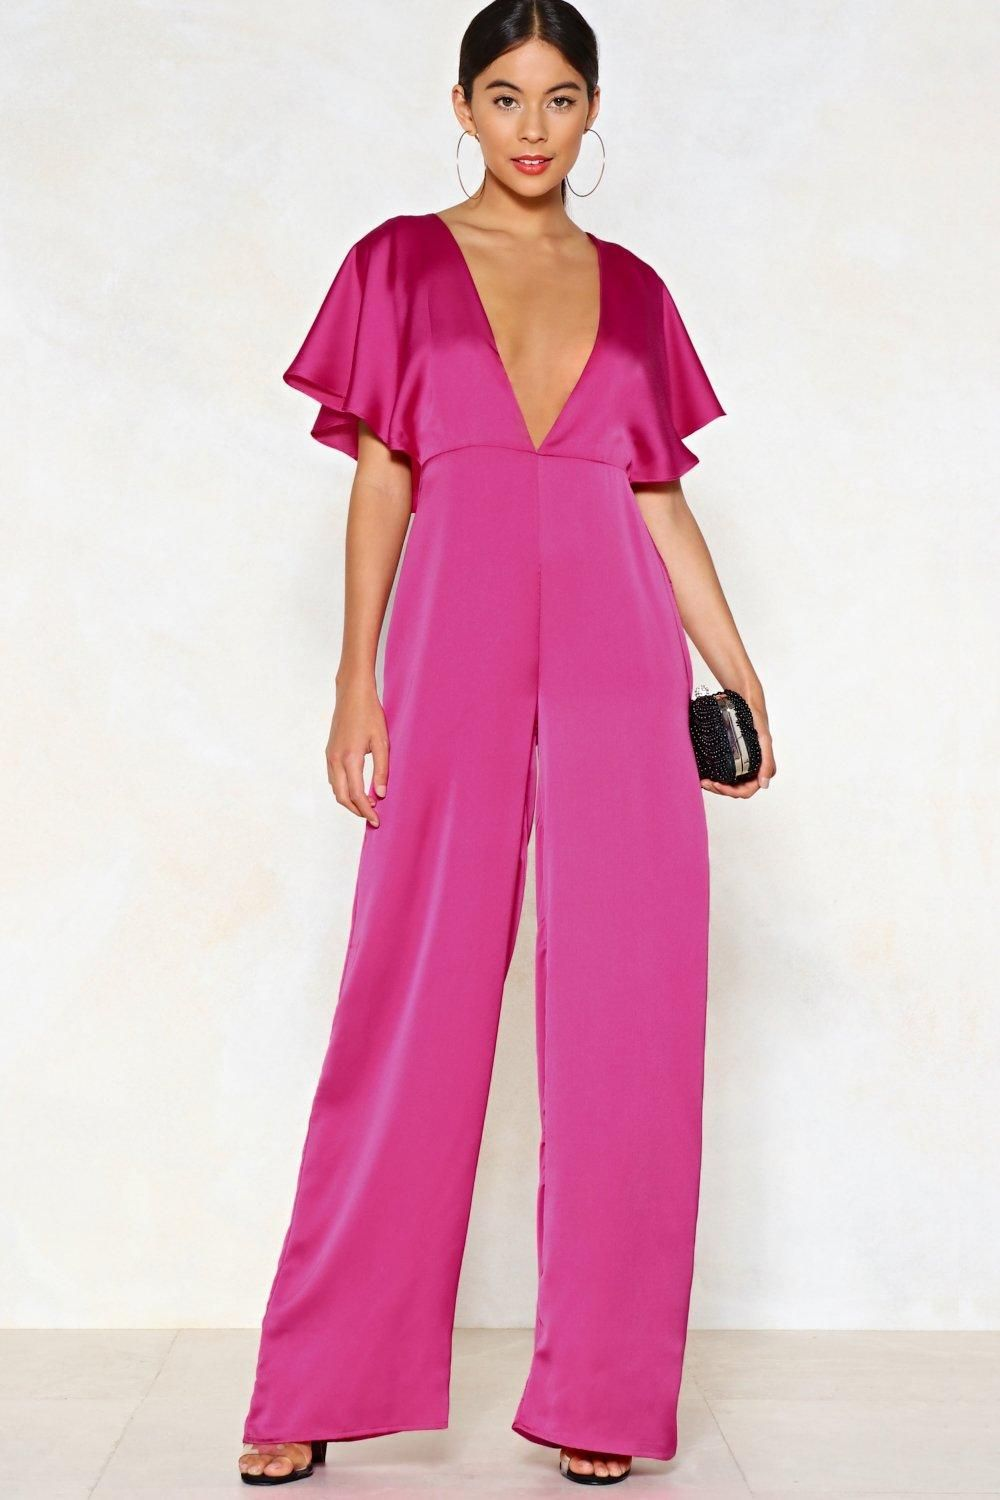 16 Best Jumpsuits for Prom - How to Wear a Cute Pantsuit to Prom 2018